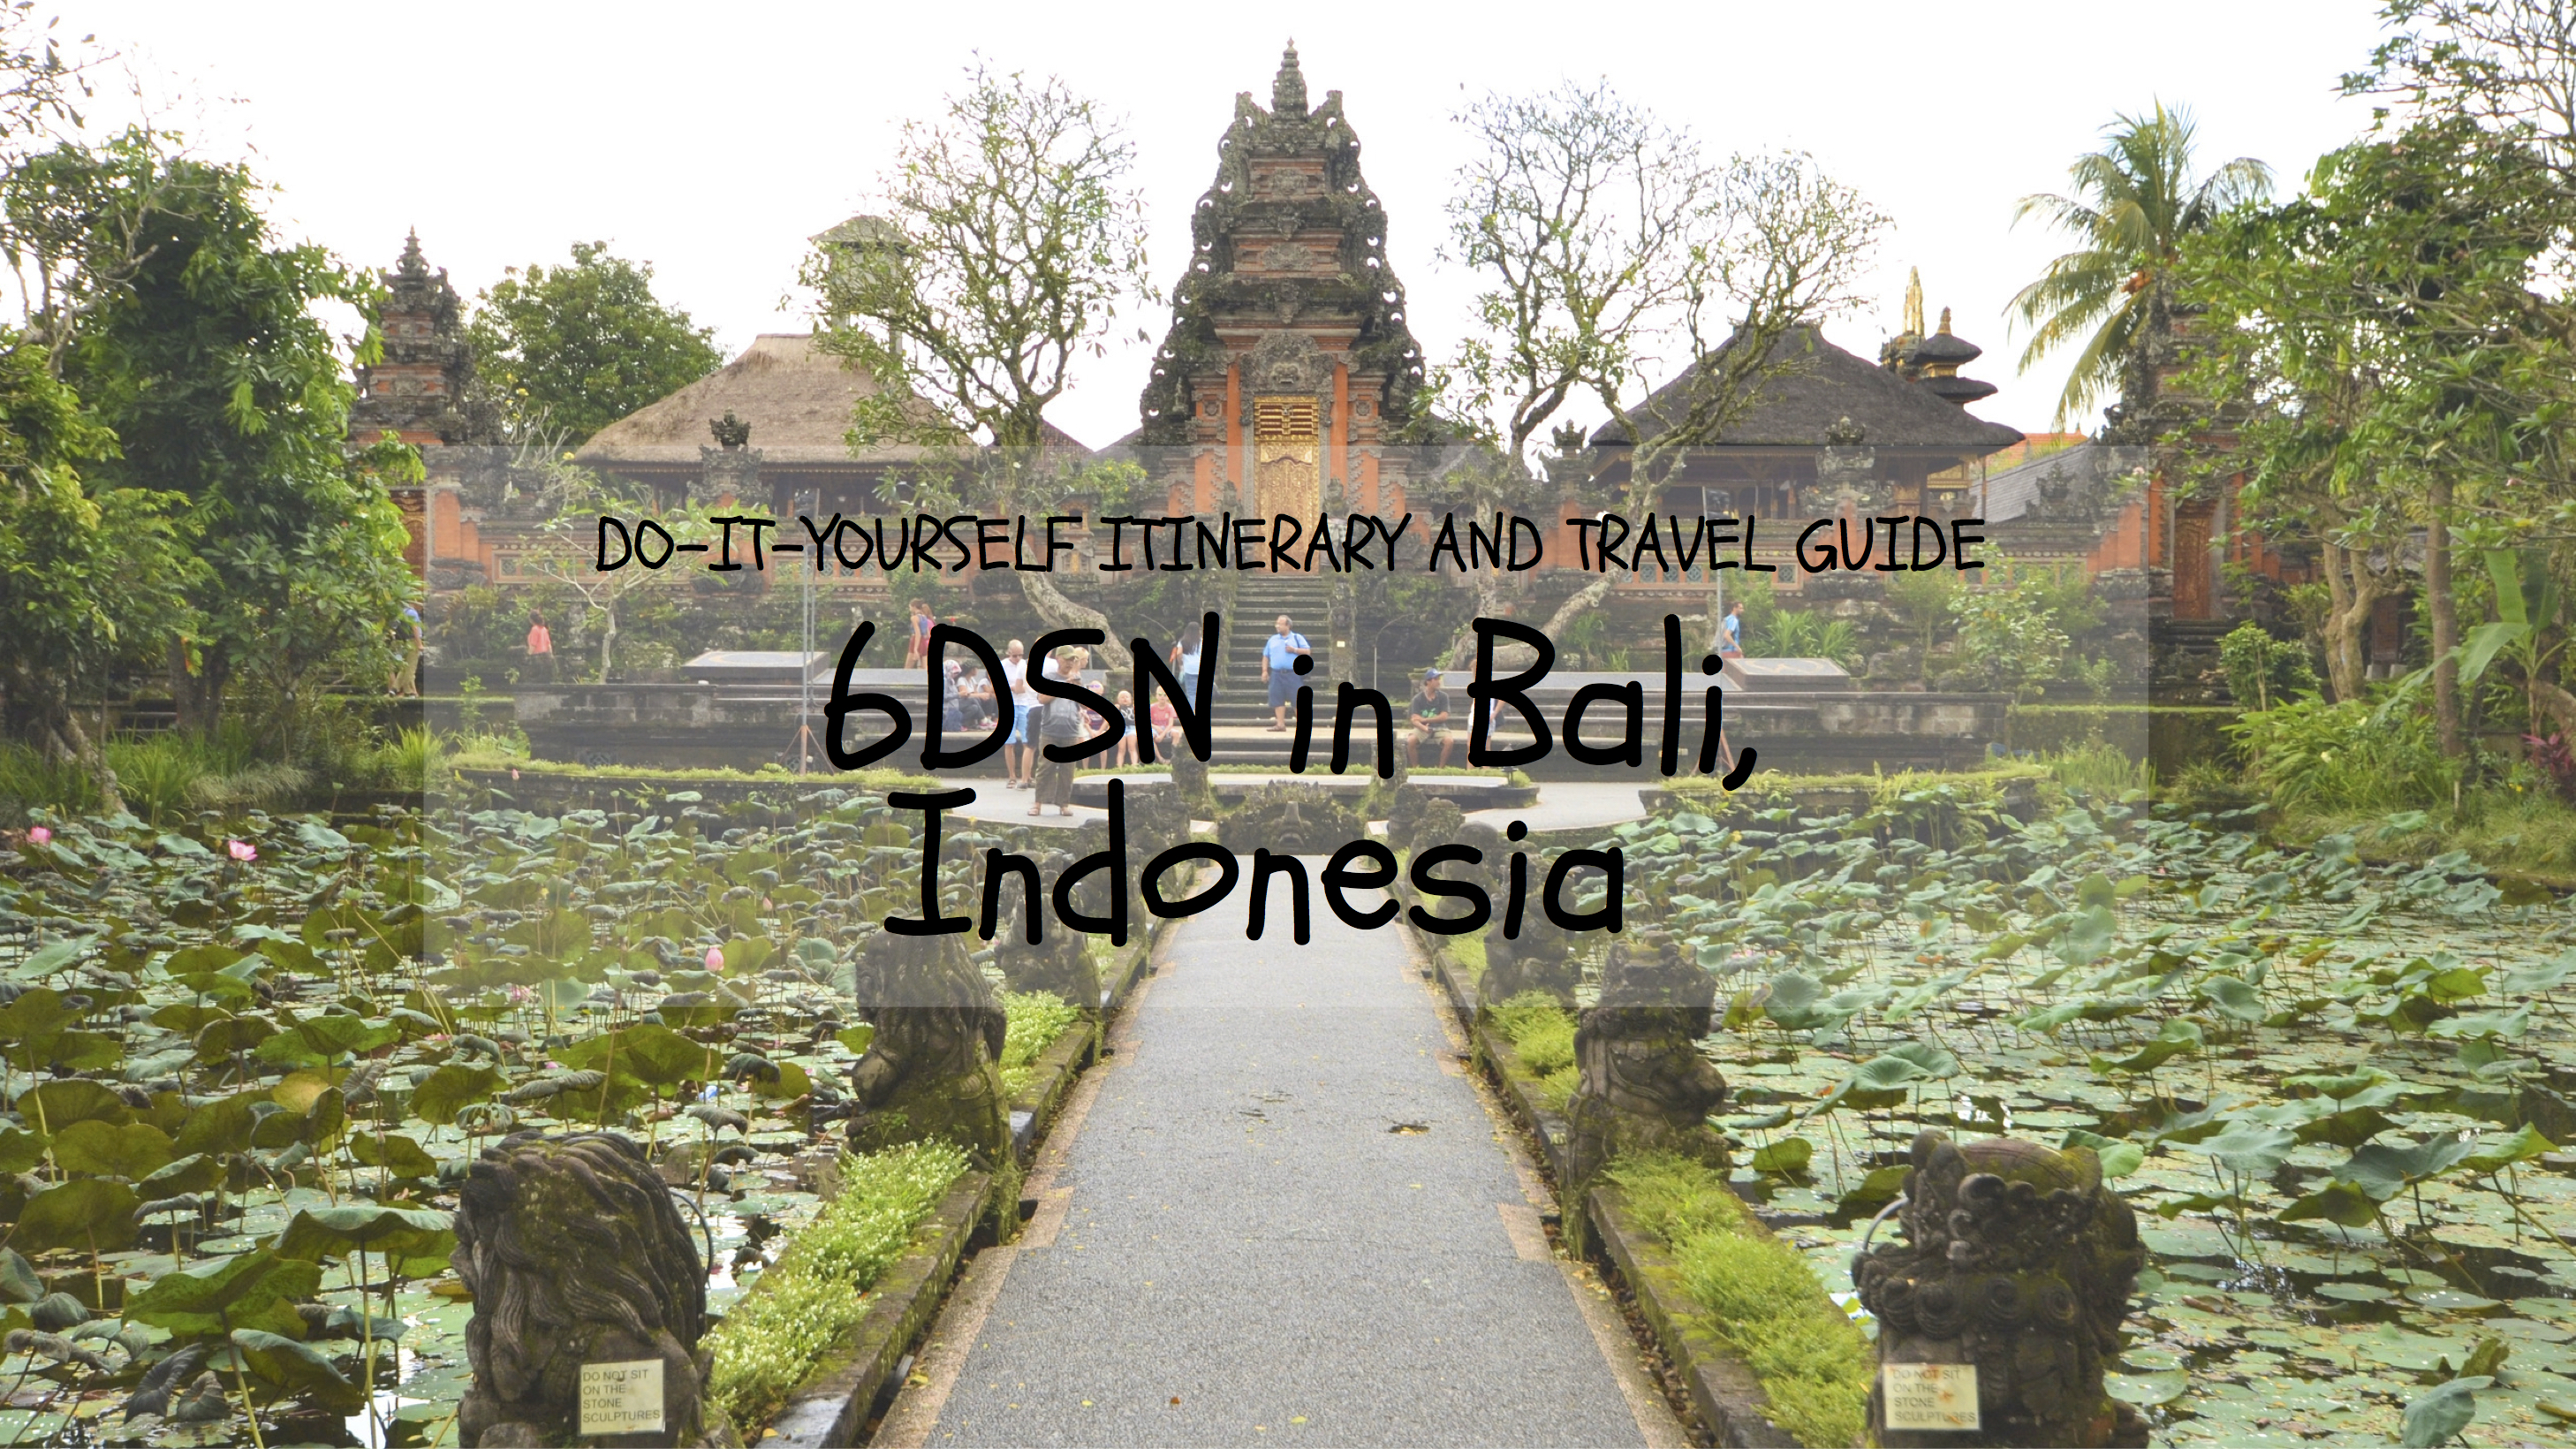 Diy Travel Guide And Itinerary 6d5n In Bali Indonesia